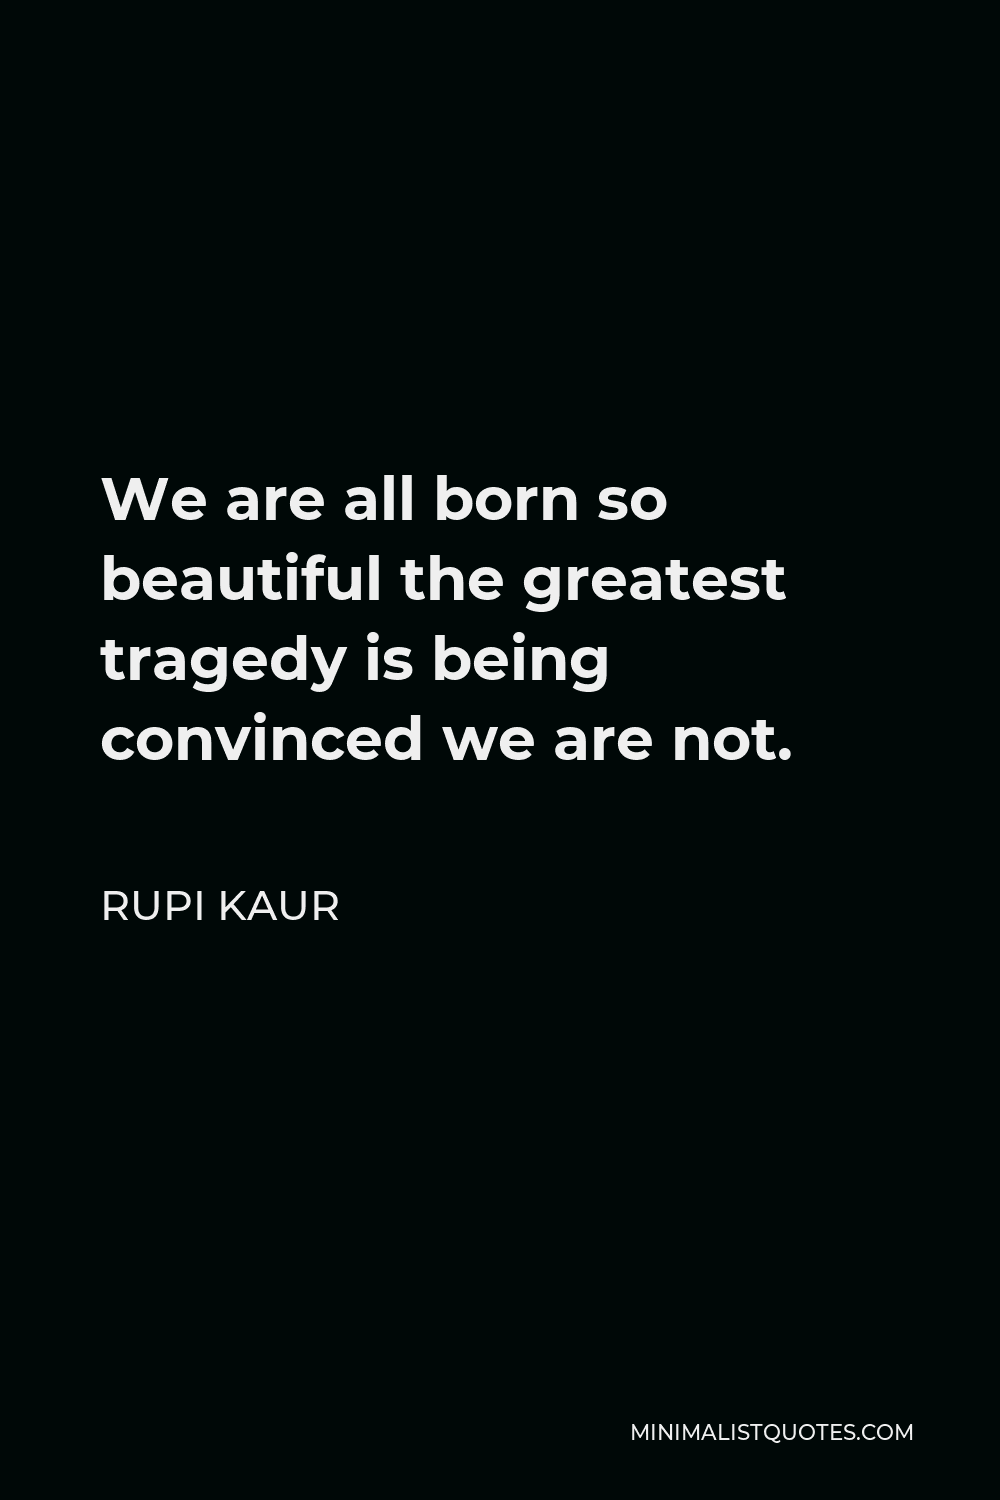 Rupi Kaur Quote We are all born so beautiful the greatest tragedy ...